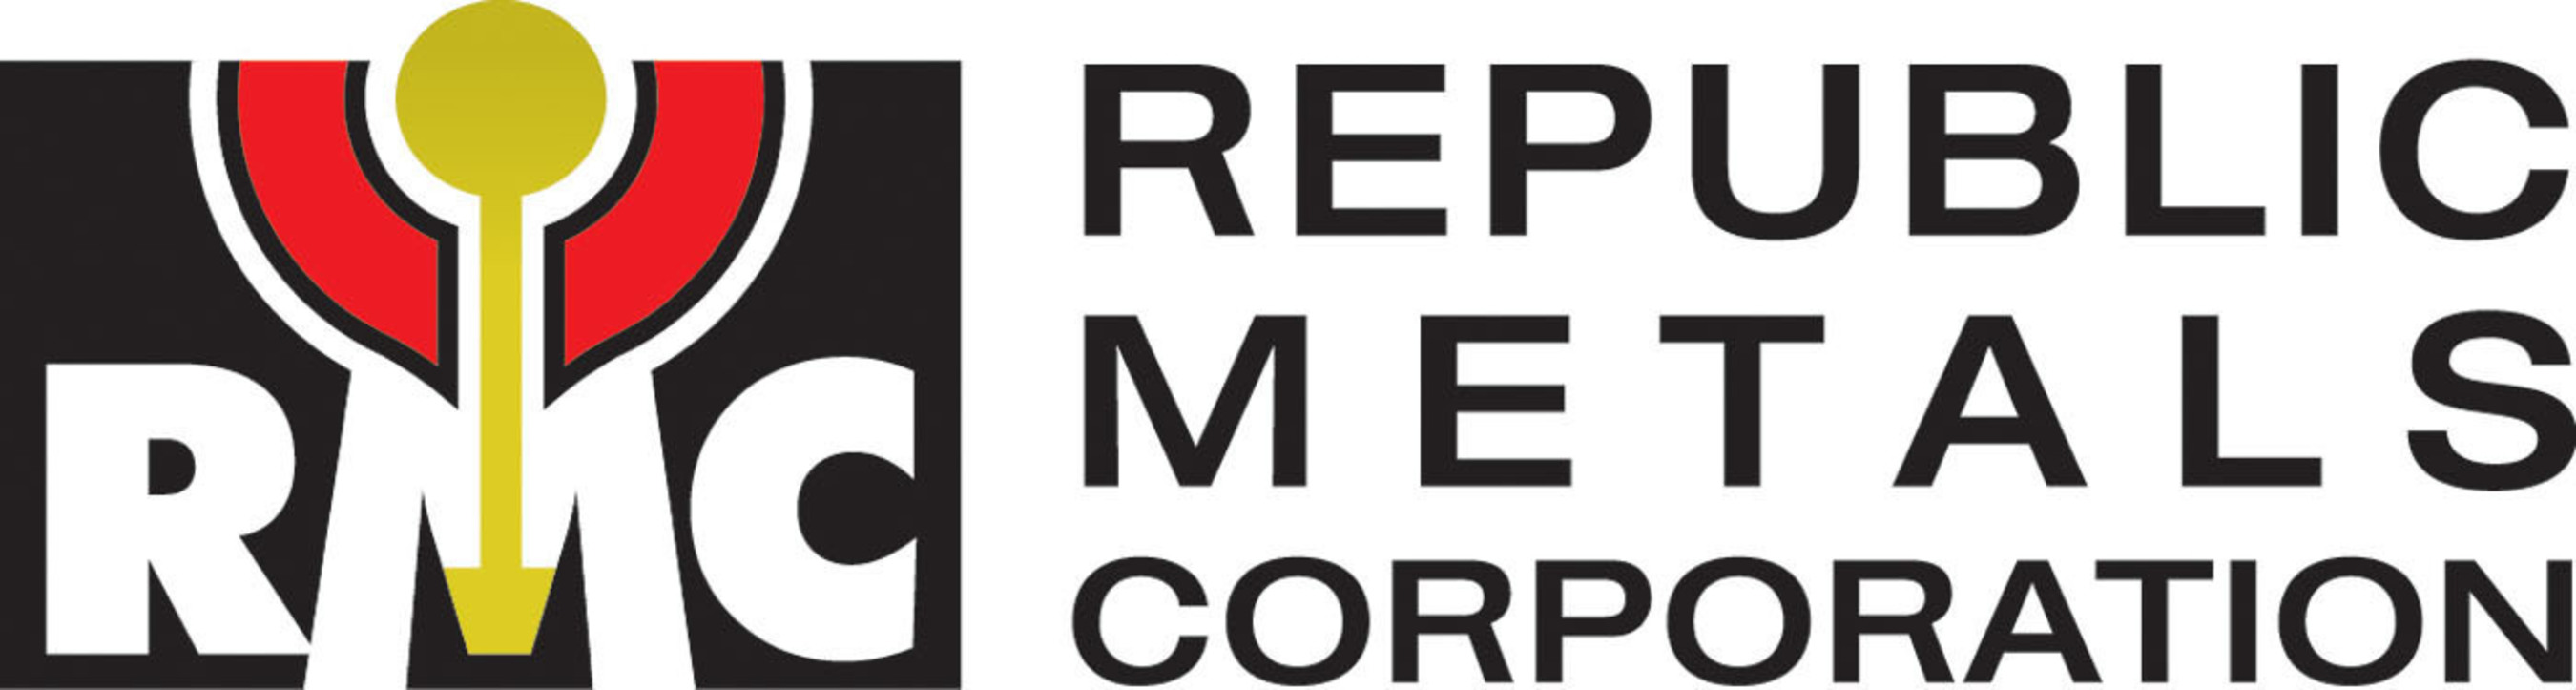 Republic Metals Corporation Logo.